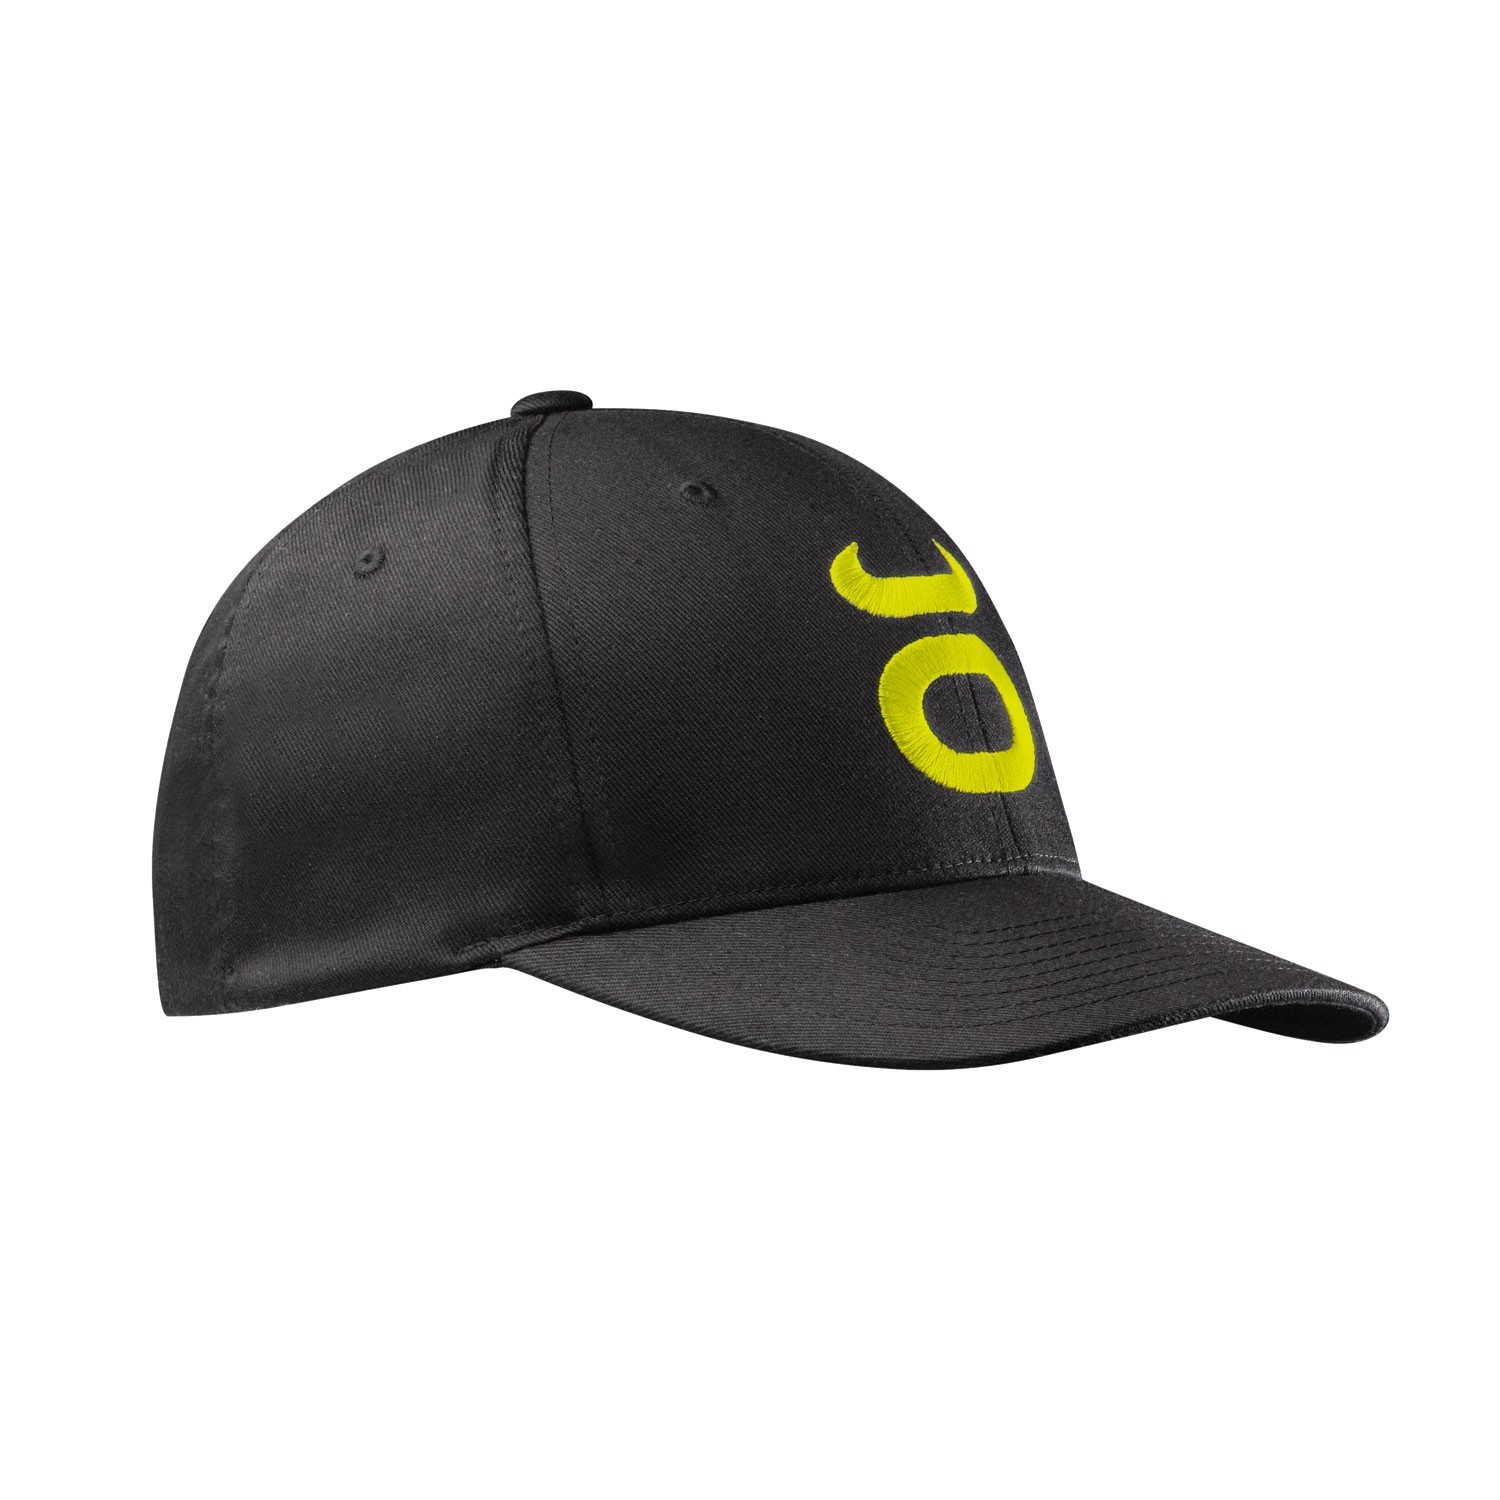 Tenacity FlexFit Cap (Black/SugaFly Yellow)